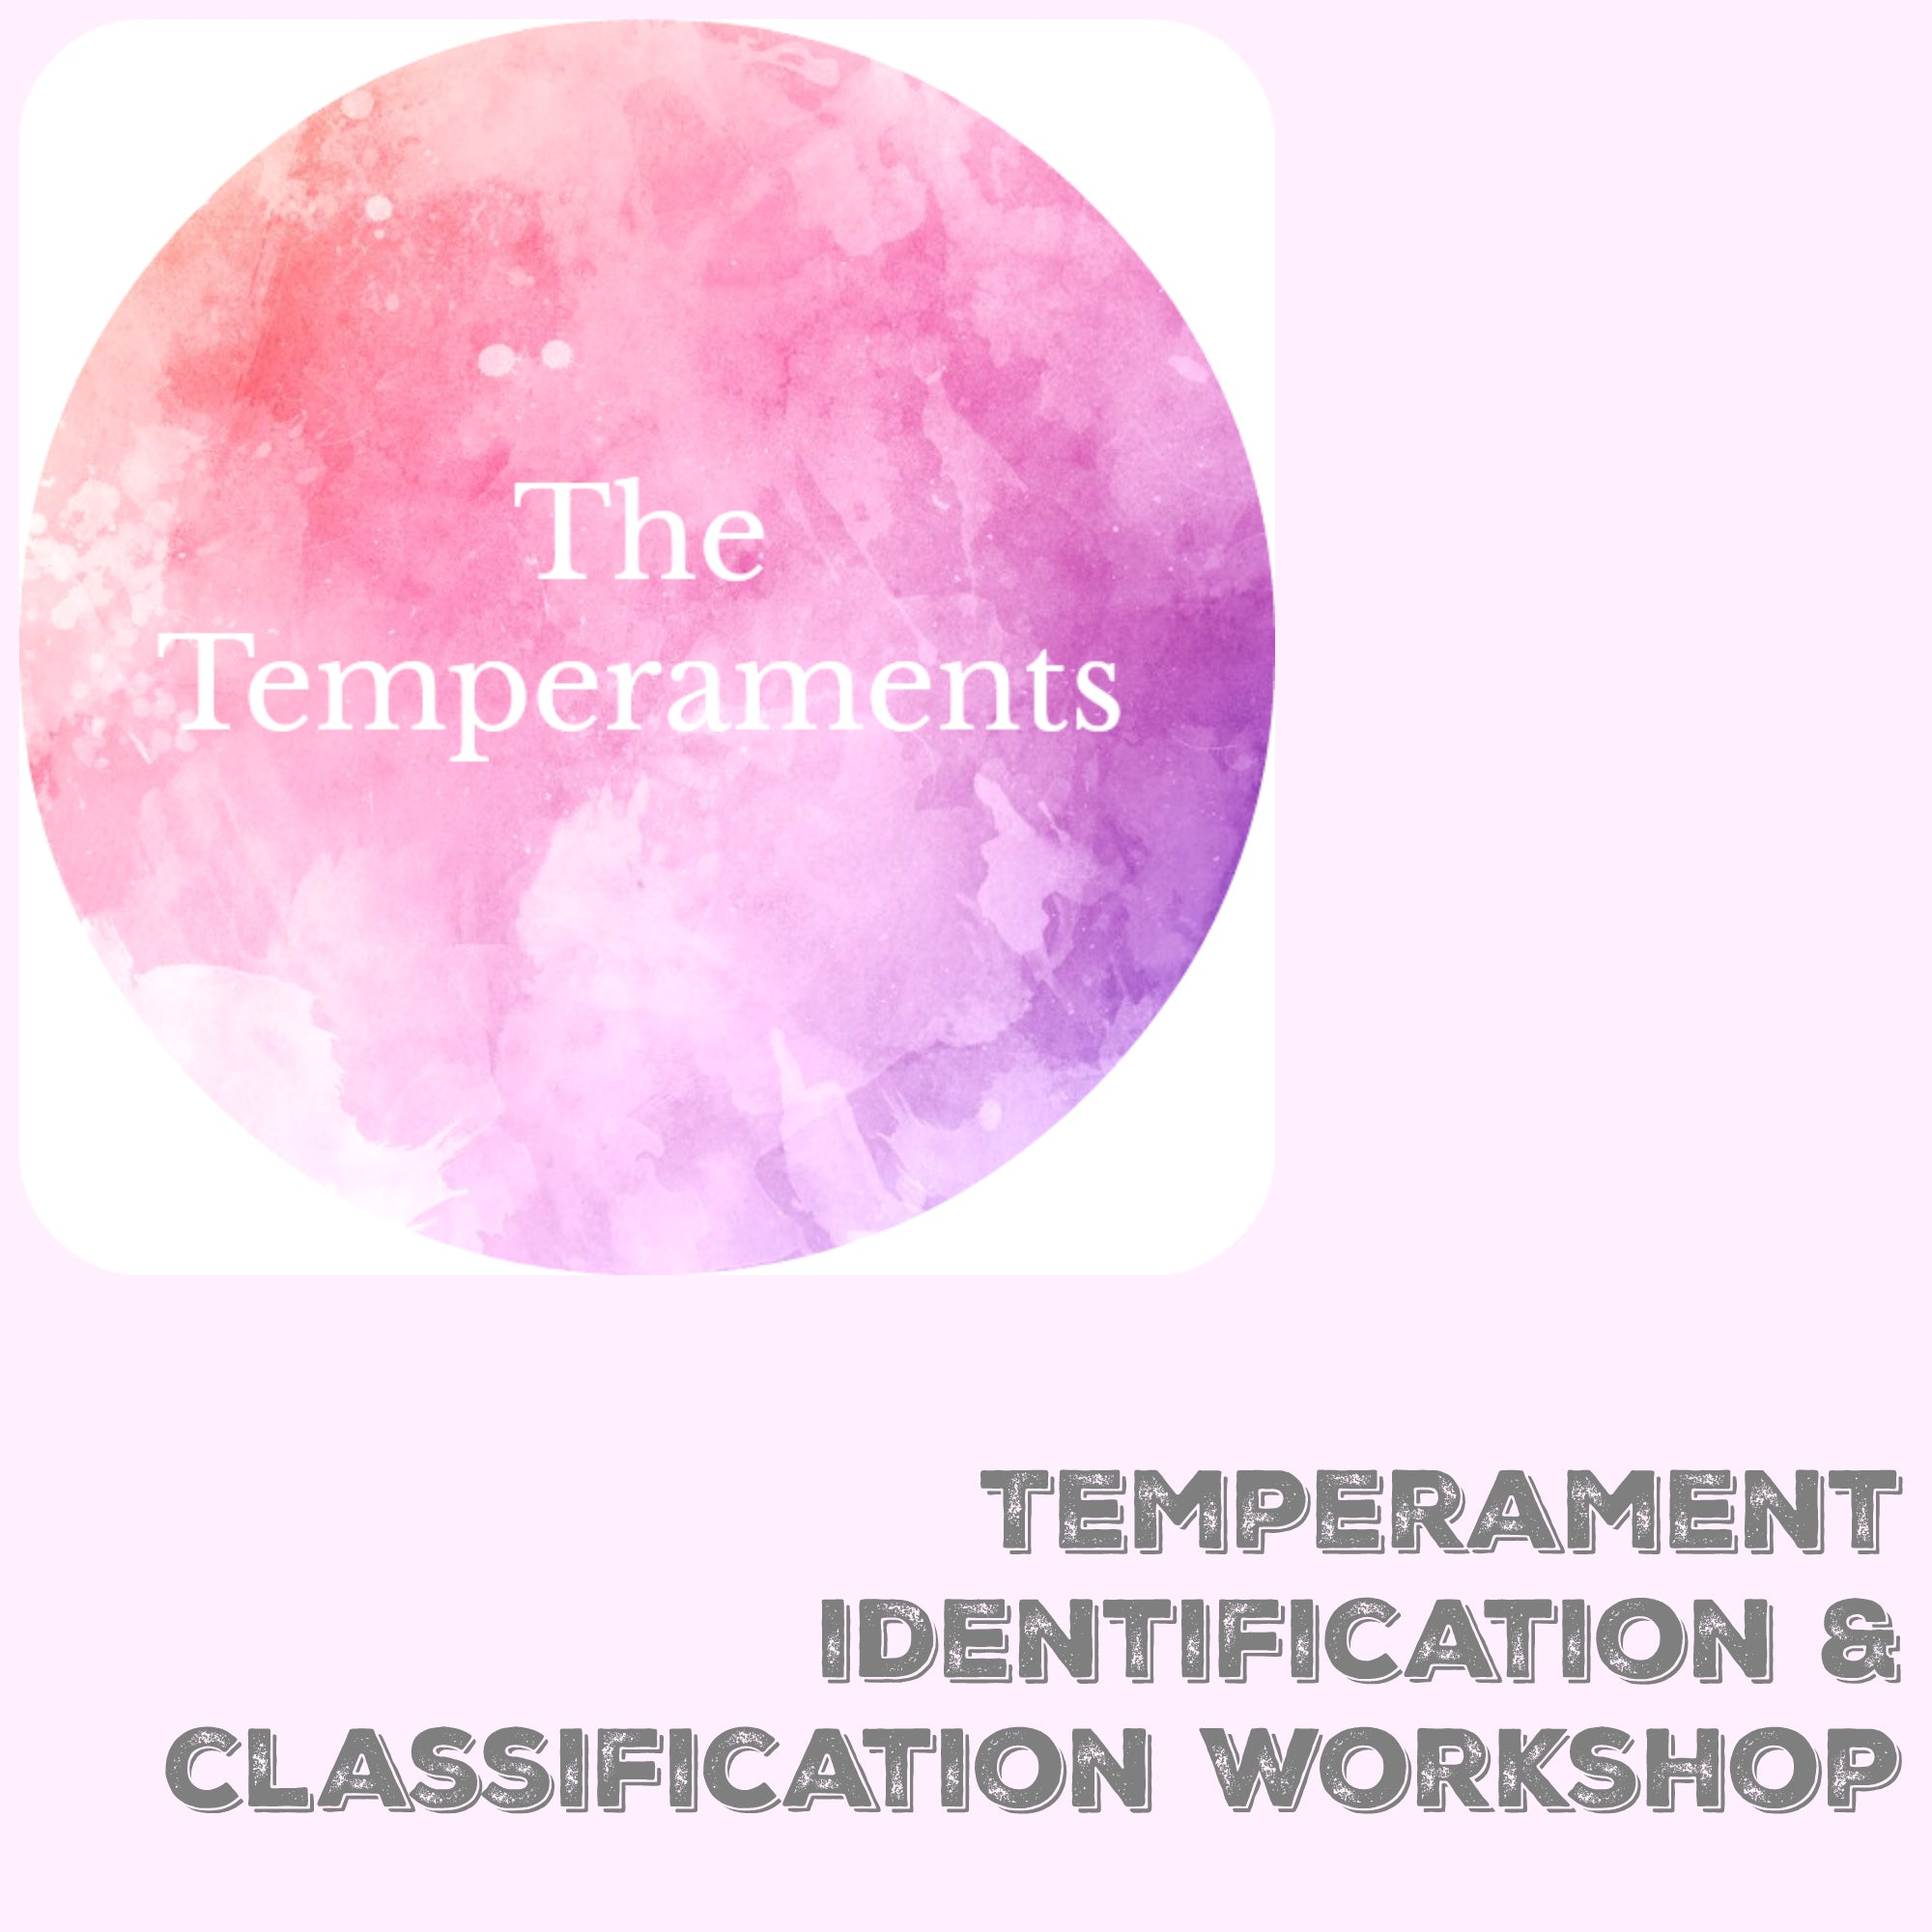 Temperament Identification & Classification Workshop